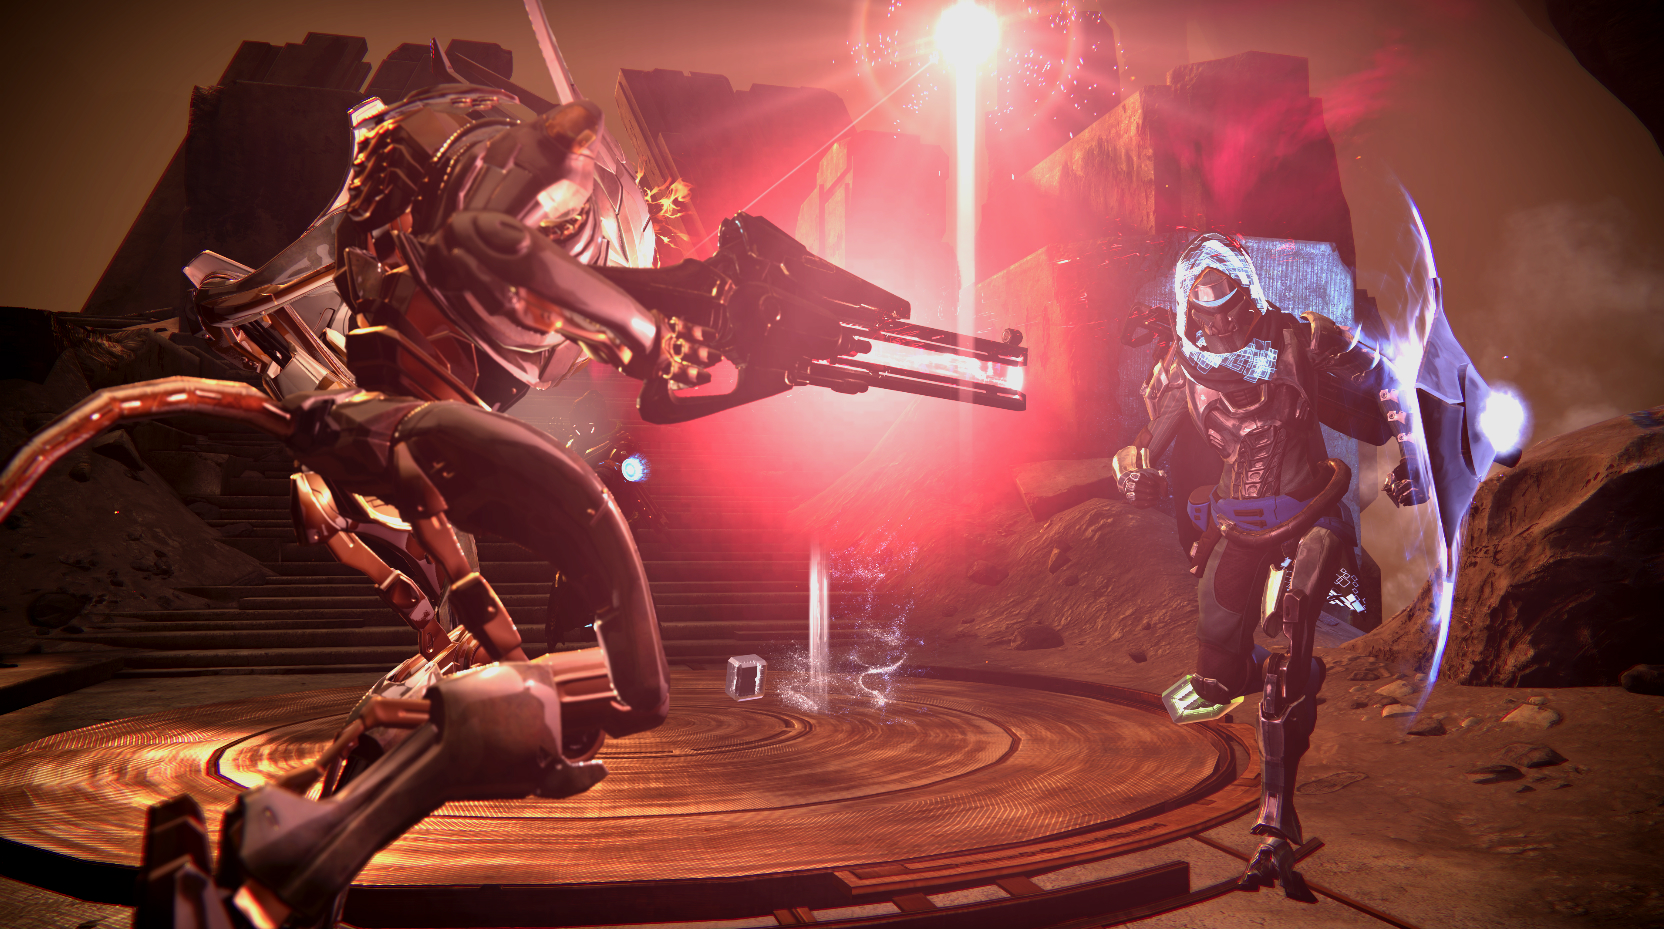 what's coming in destiny's age of triumph according to bungie's